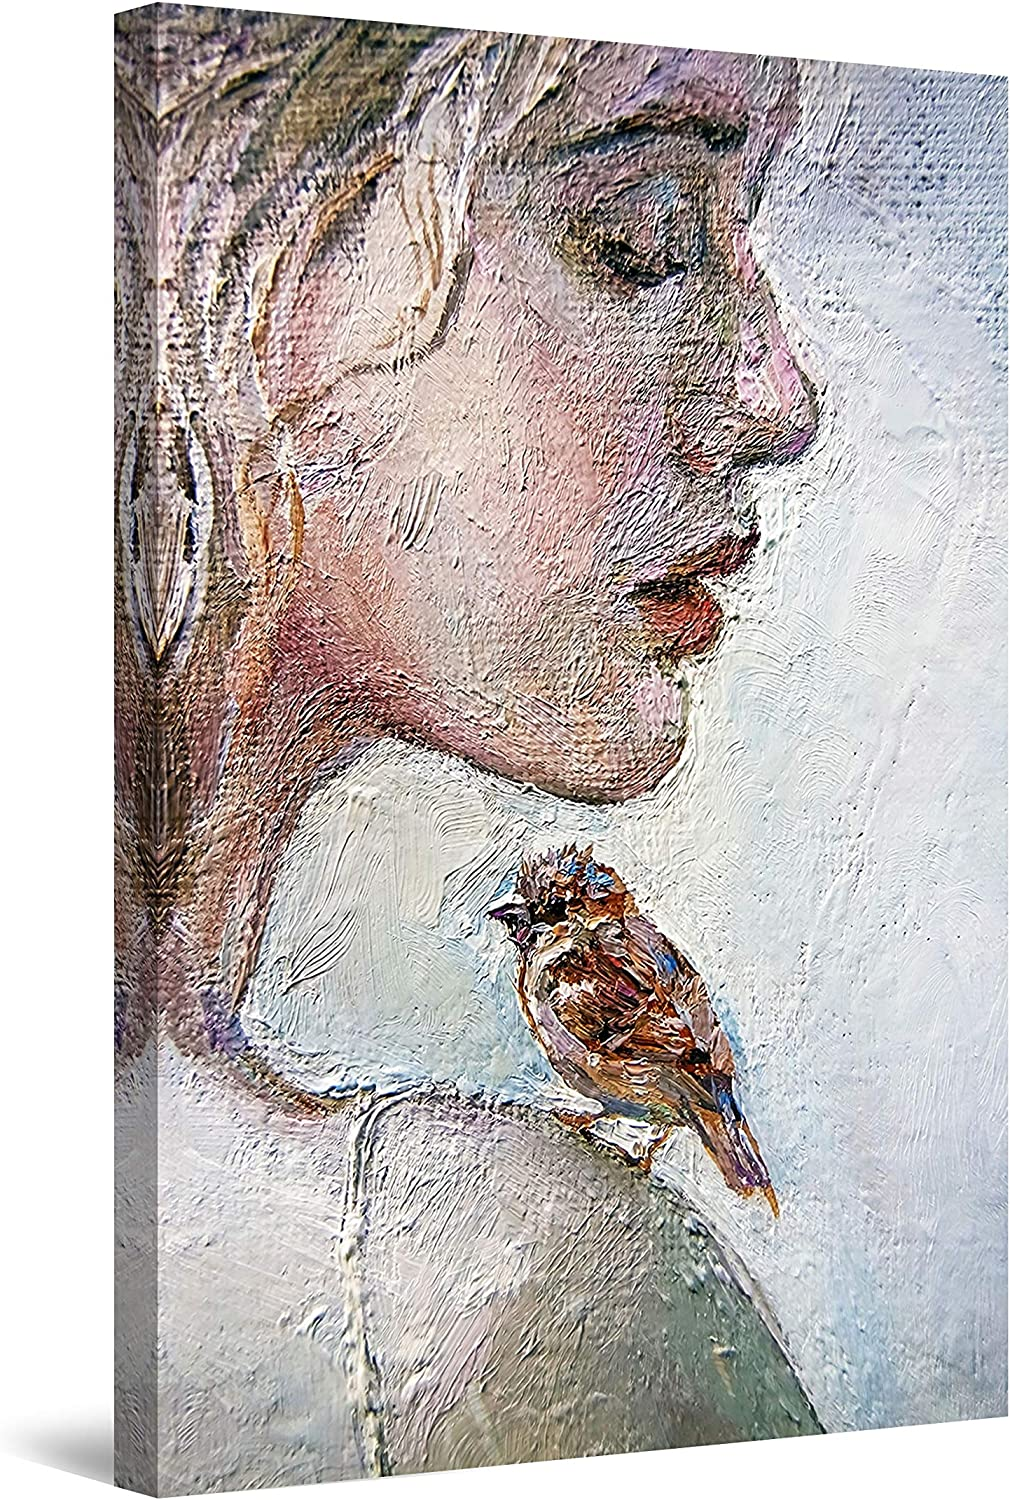 Startonight Canvas Wall Art Decor Miami Mall and Super sale period limited Abstract Bird Little Woman